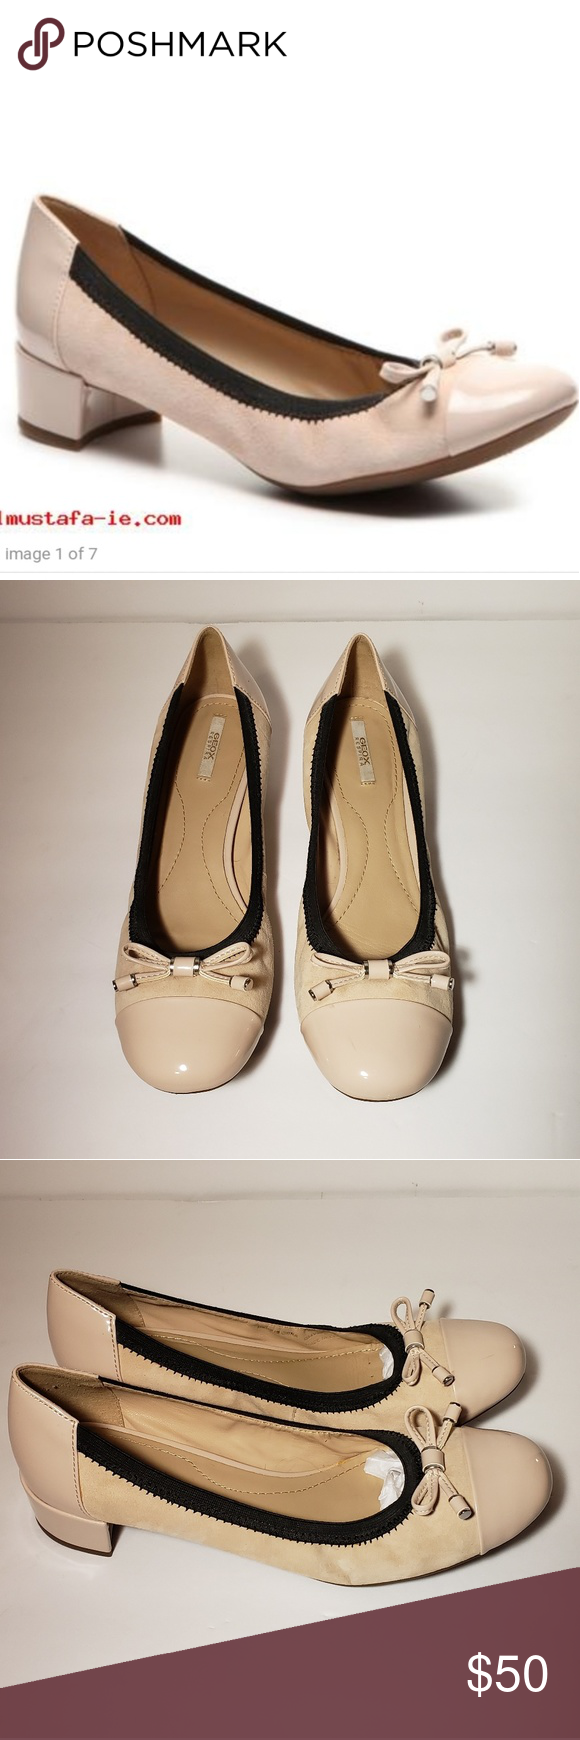 Geox pump respira carey court shoes patent leather in black